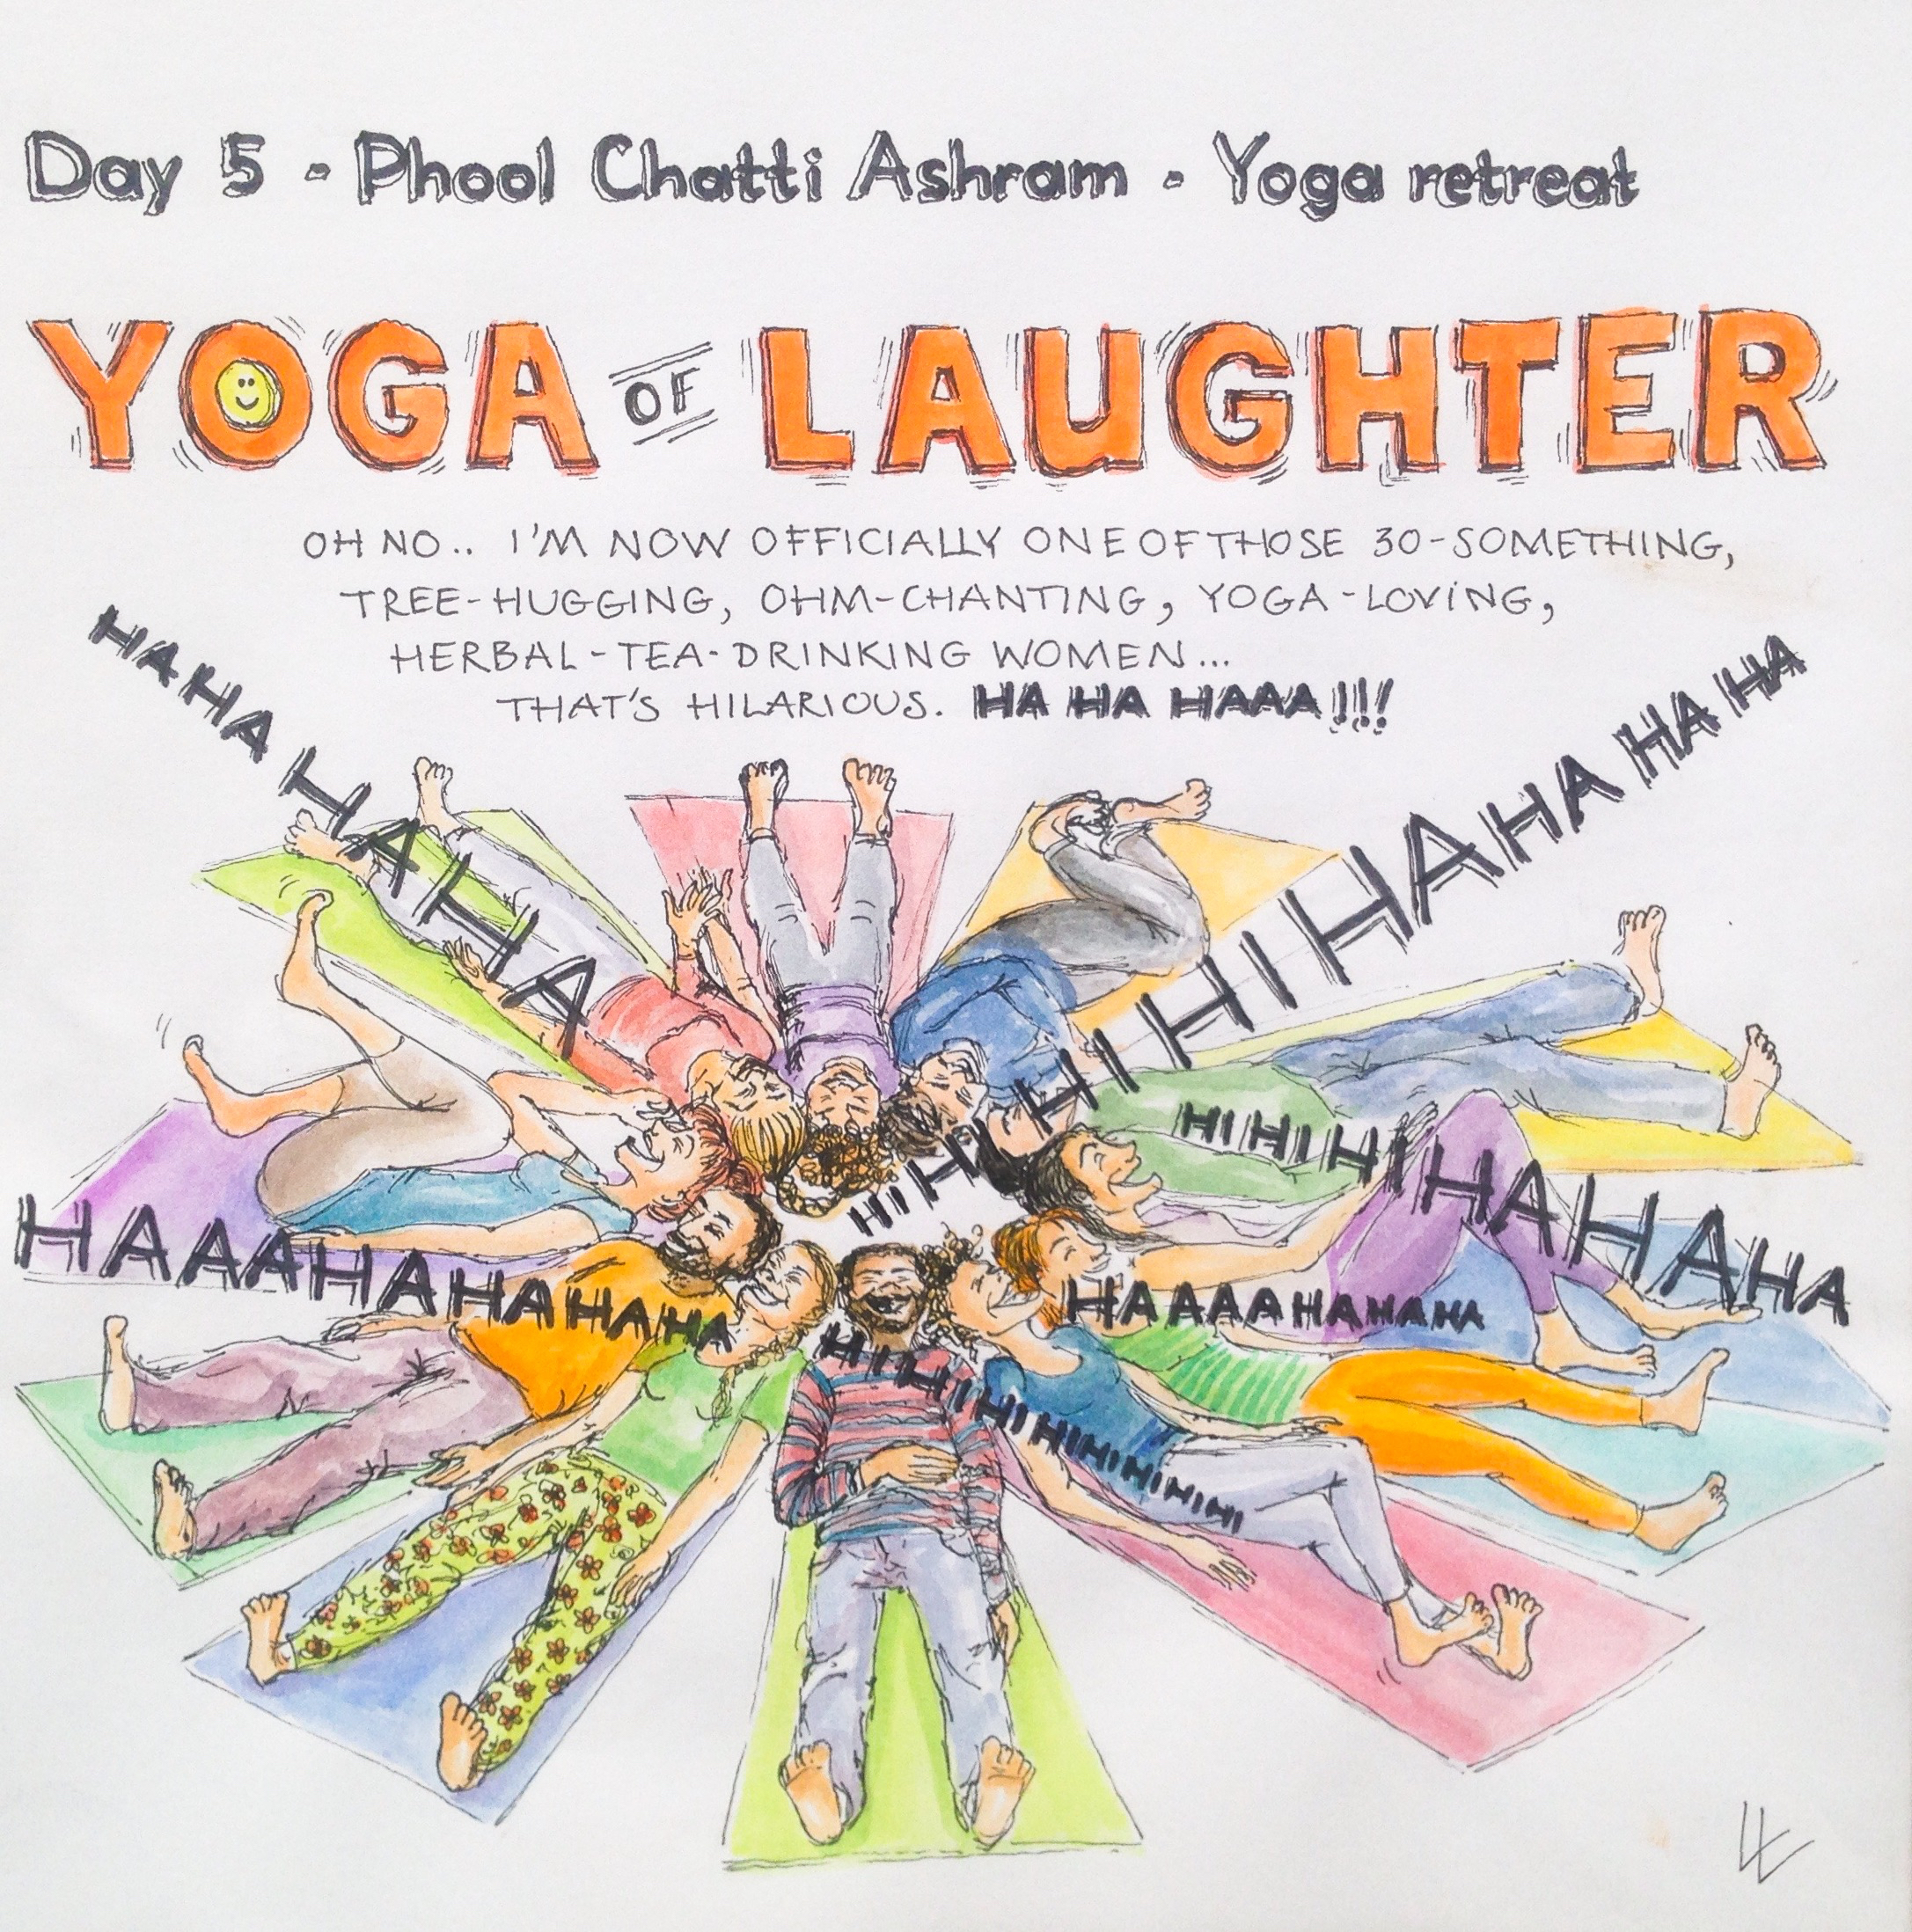 Laughing yoga Phool Chatti Ashram Yoga Meditation India Ganga River Rishikesh